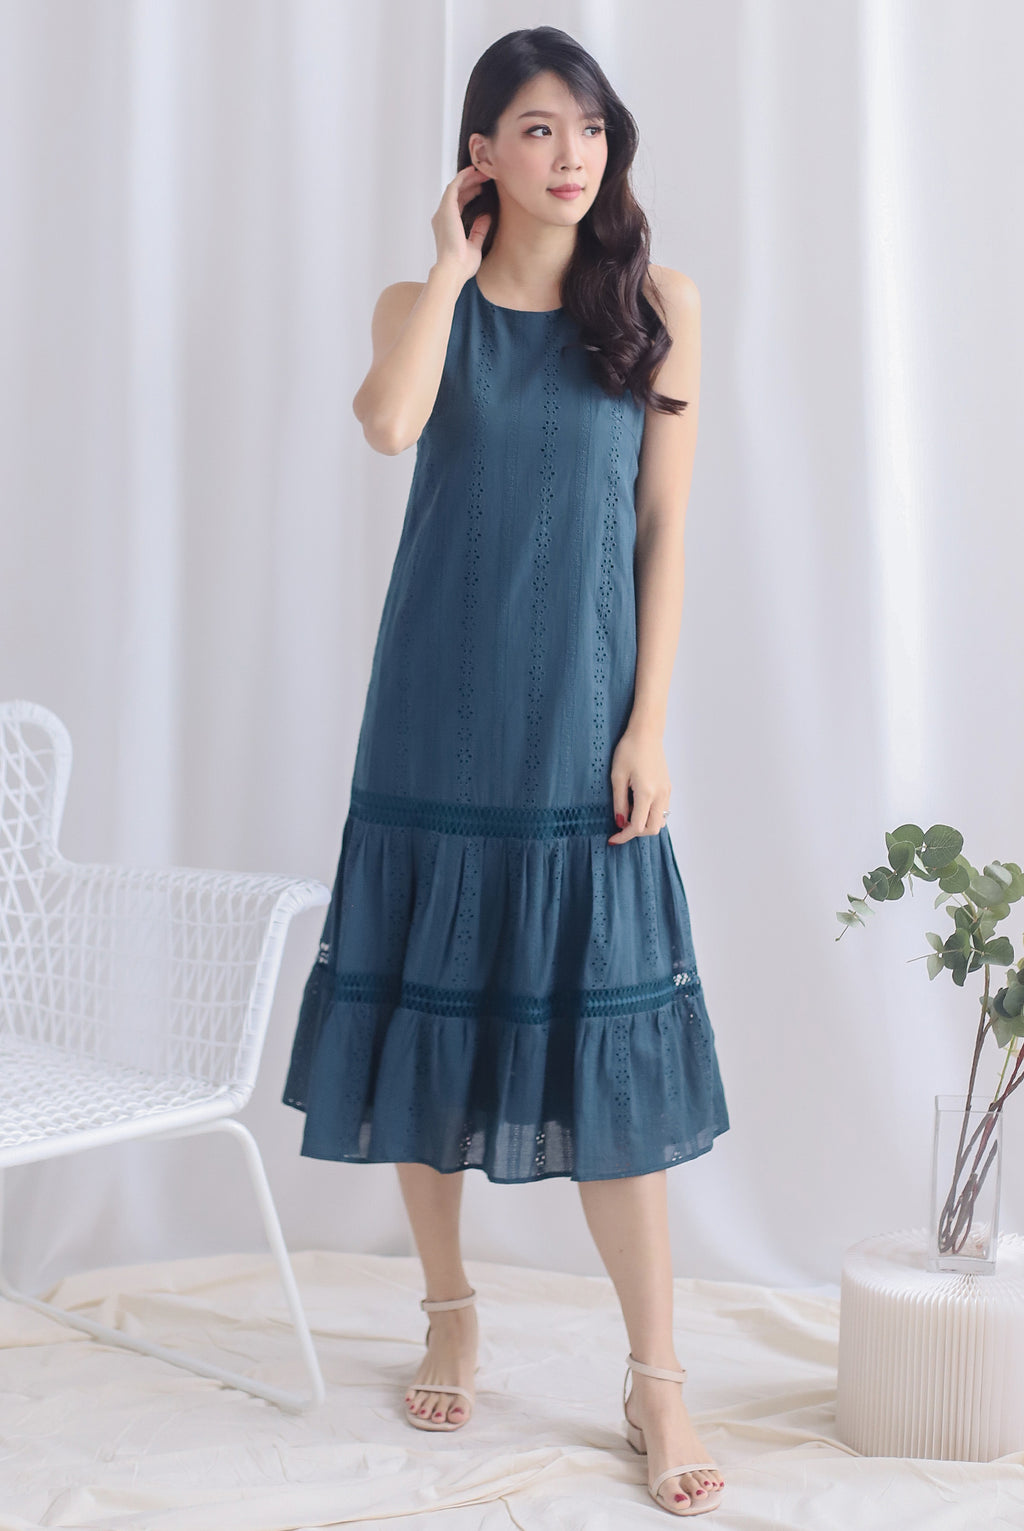 Abilene Eyelet Midi Dress In Forest Green